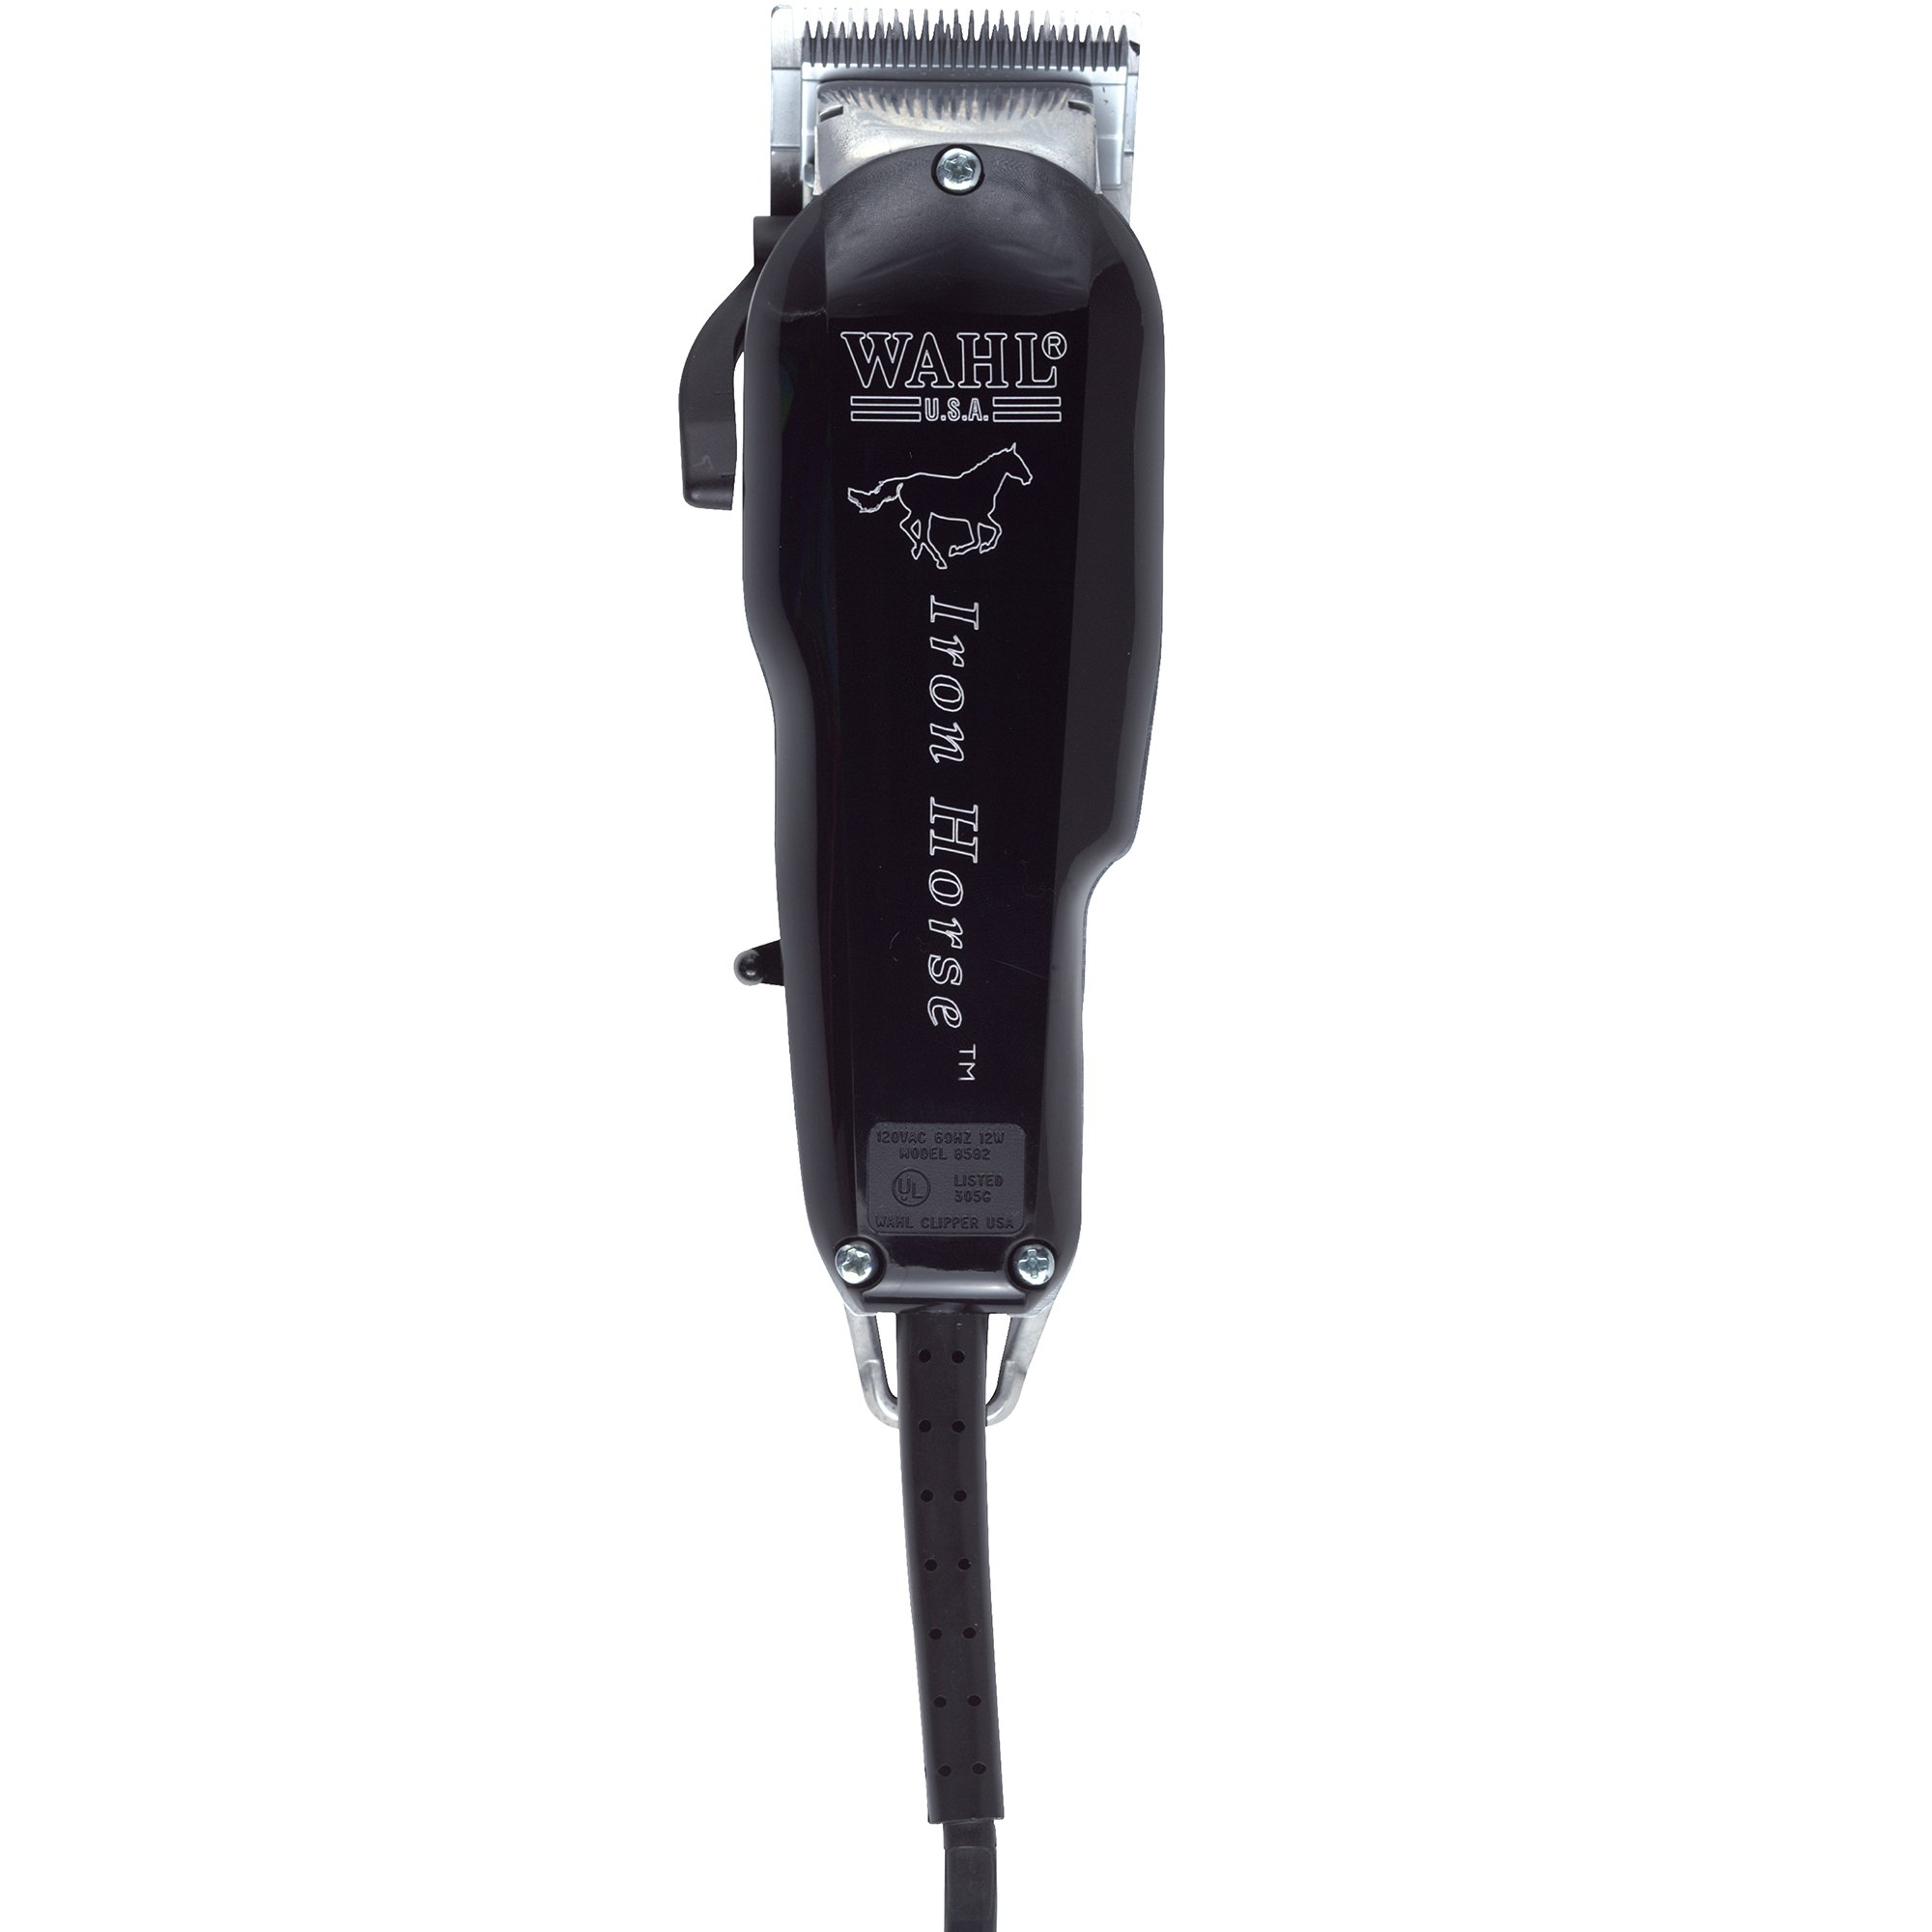 Wahl Professional Animal Iron Horse Equine Clipper For Trimming & Light Body Clipping #8582-100